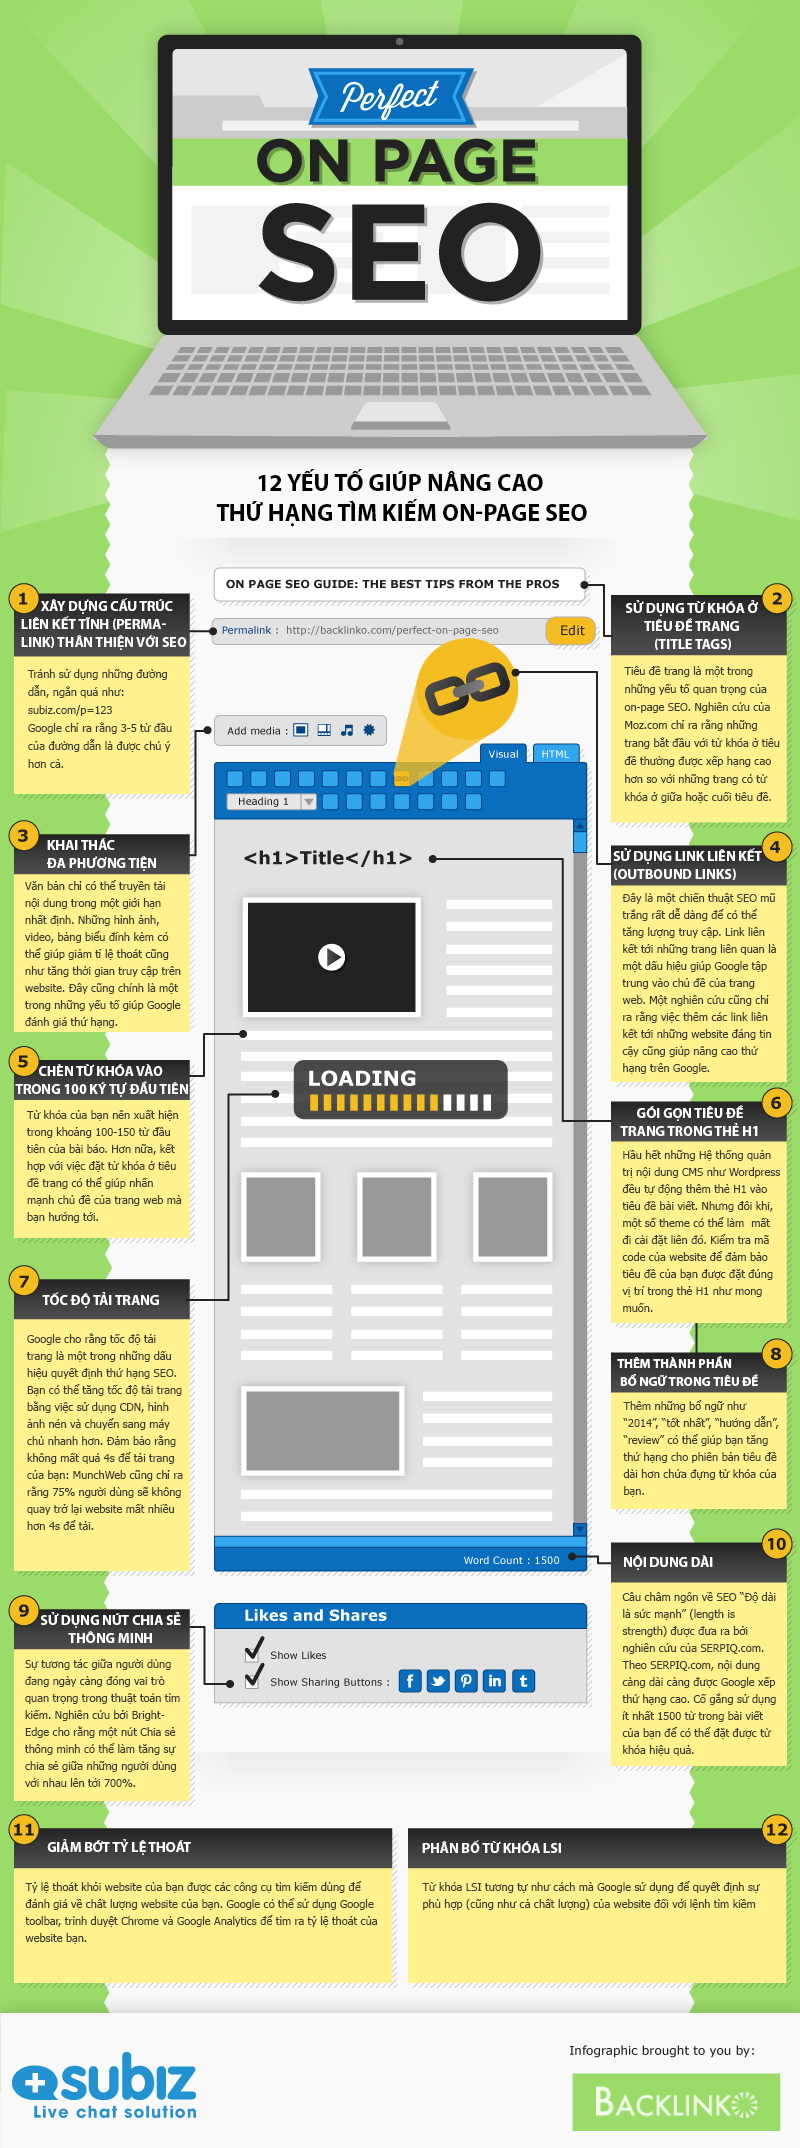 Basic-On-Page-SEO-Infographic.png